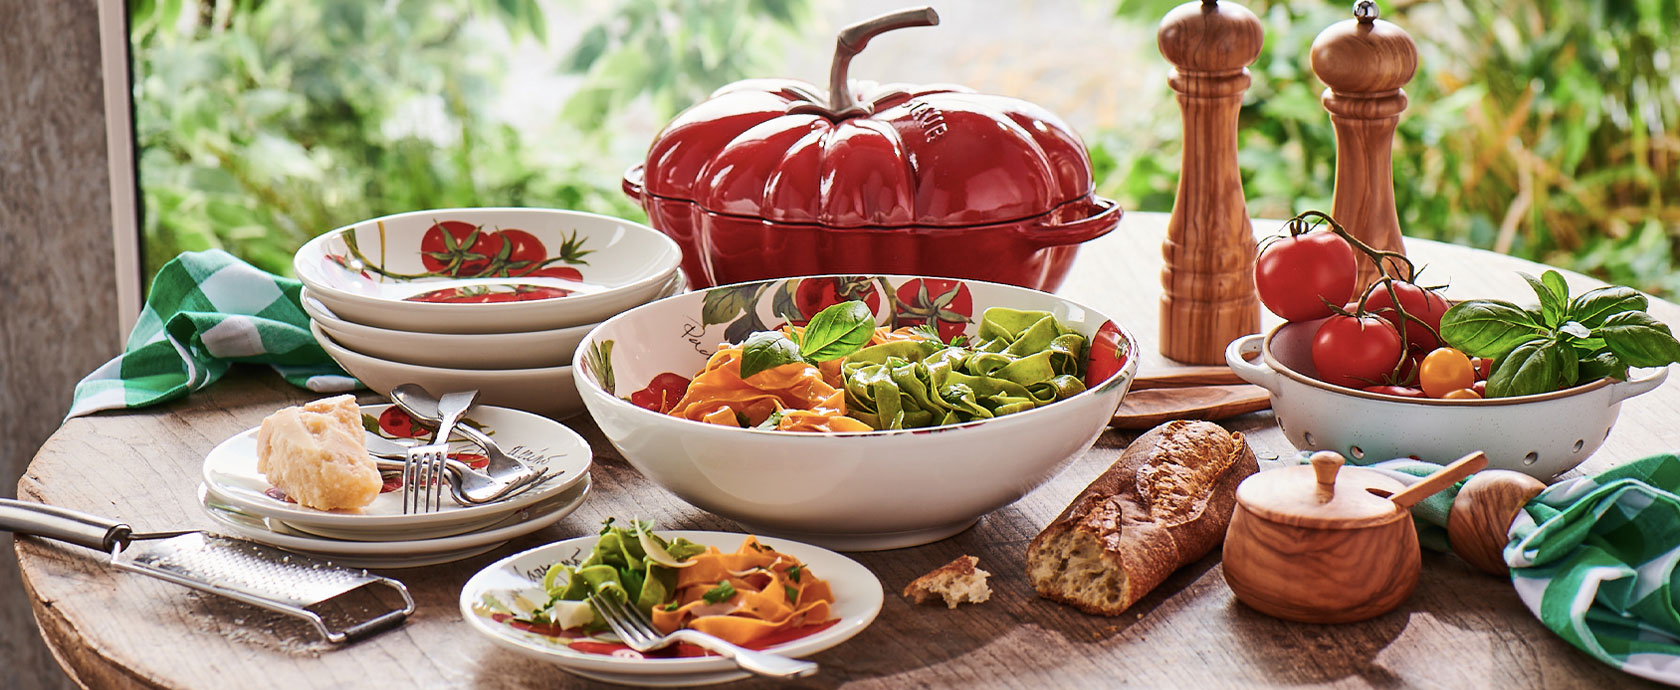 Summer table set with tomato dinnerware and Staub tomoto cocotte cookware.